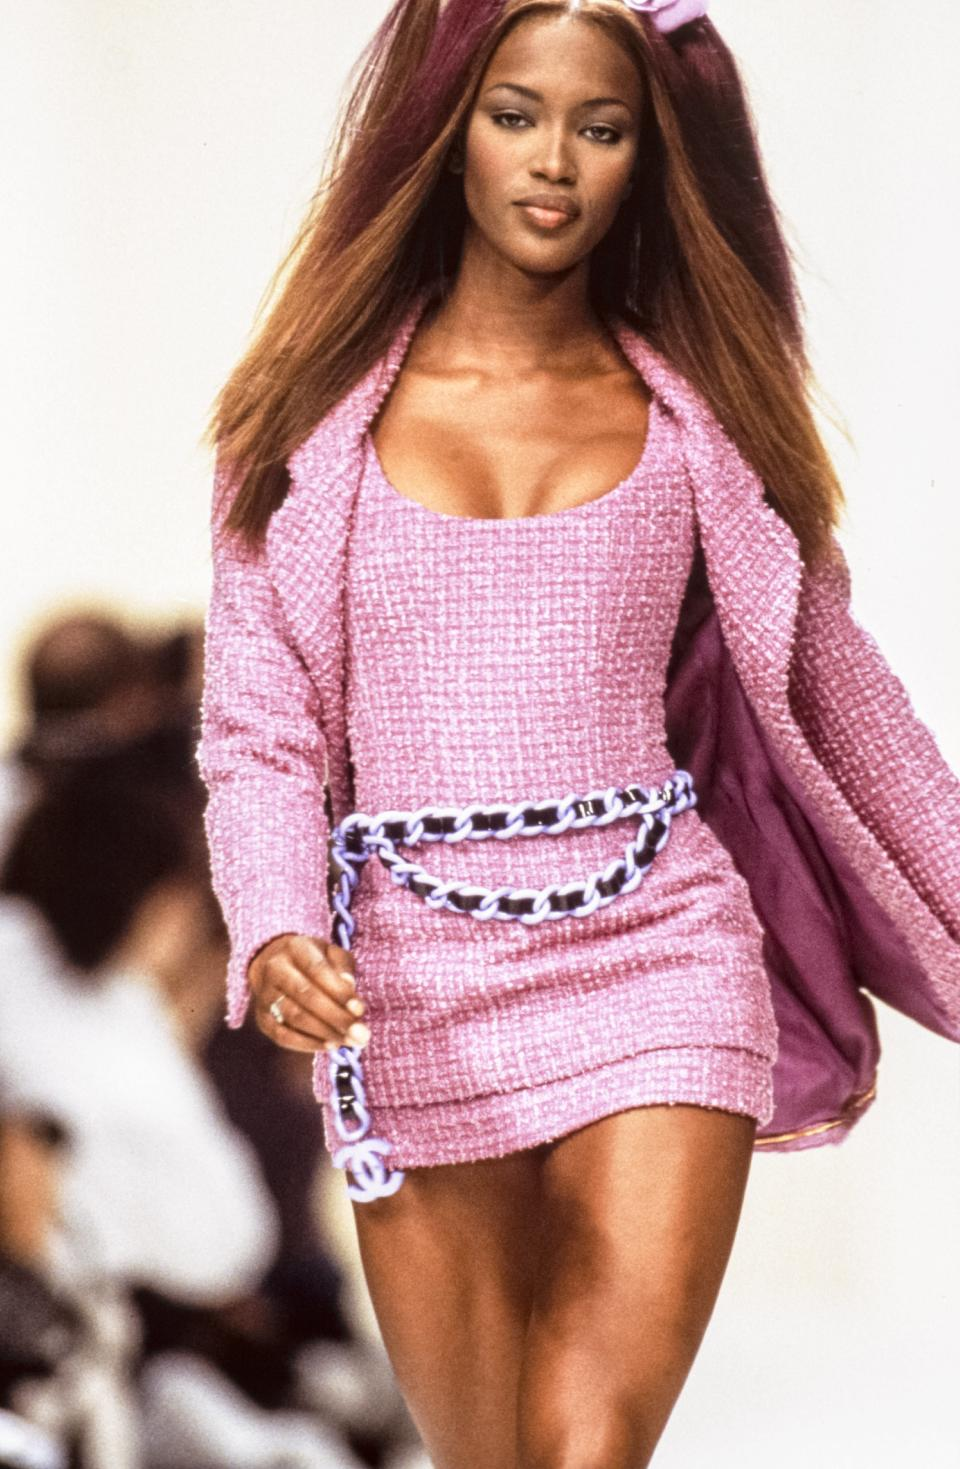 <p>The pink suit! The belt! The '90s! </p>